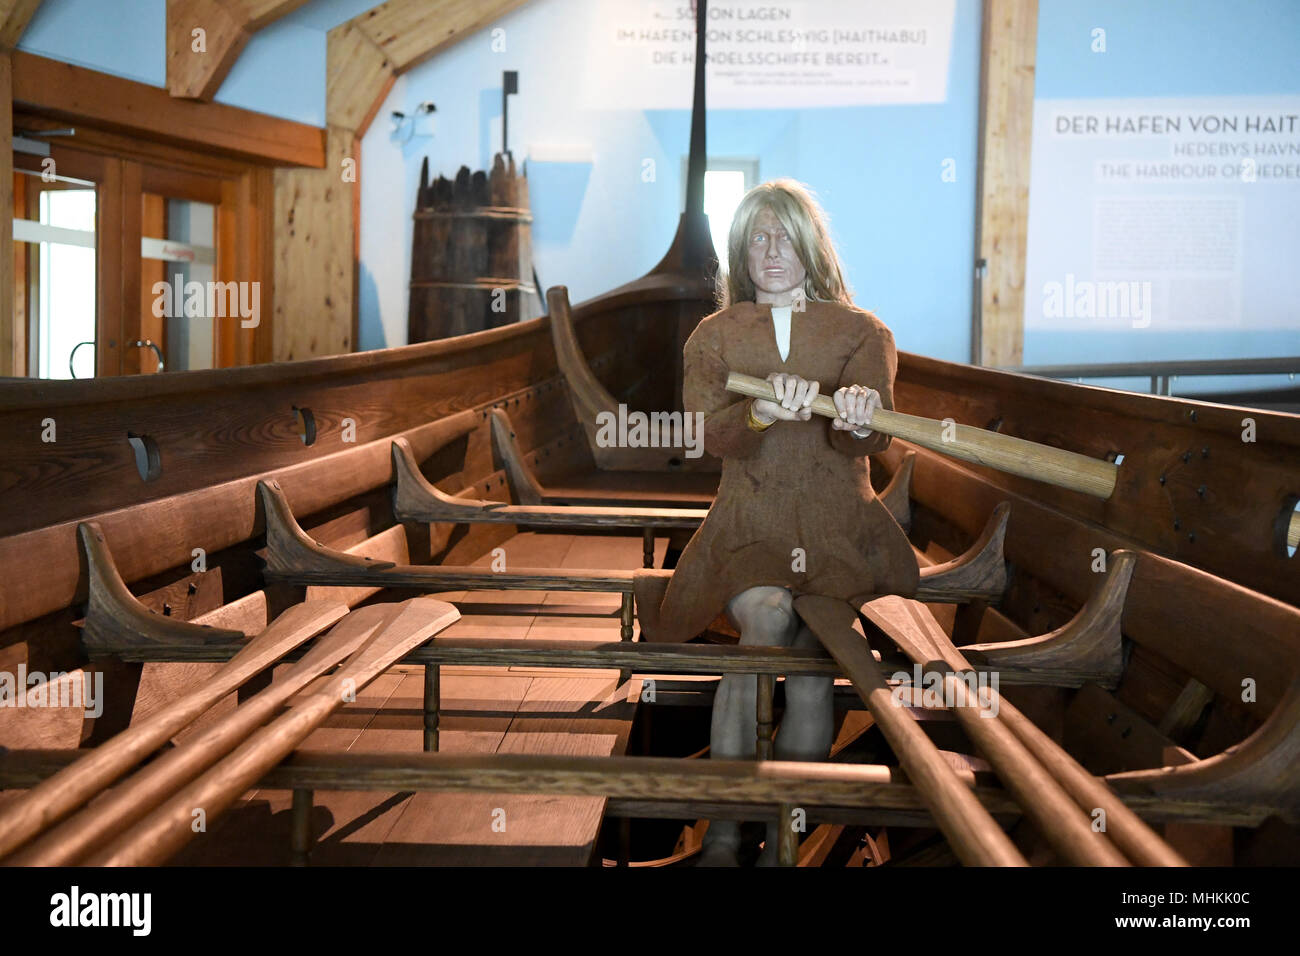 02 May 2018, Germany, Busdorf: A doll sitting in a boat at the Viking Museum Haithabu. The museum was closed for 18 months due to extensive renovation work and is to be reopened on 03 May 2018. Photo: Carsten Rehder/dpa - Stock Image